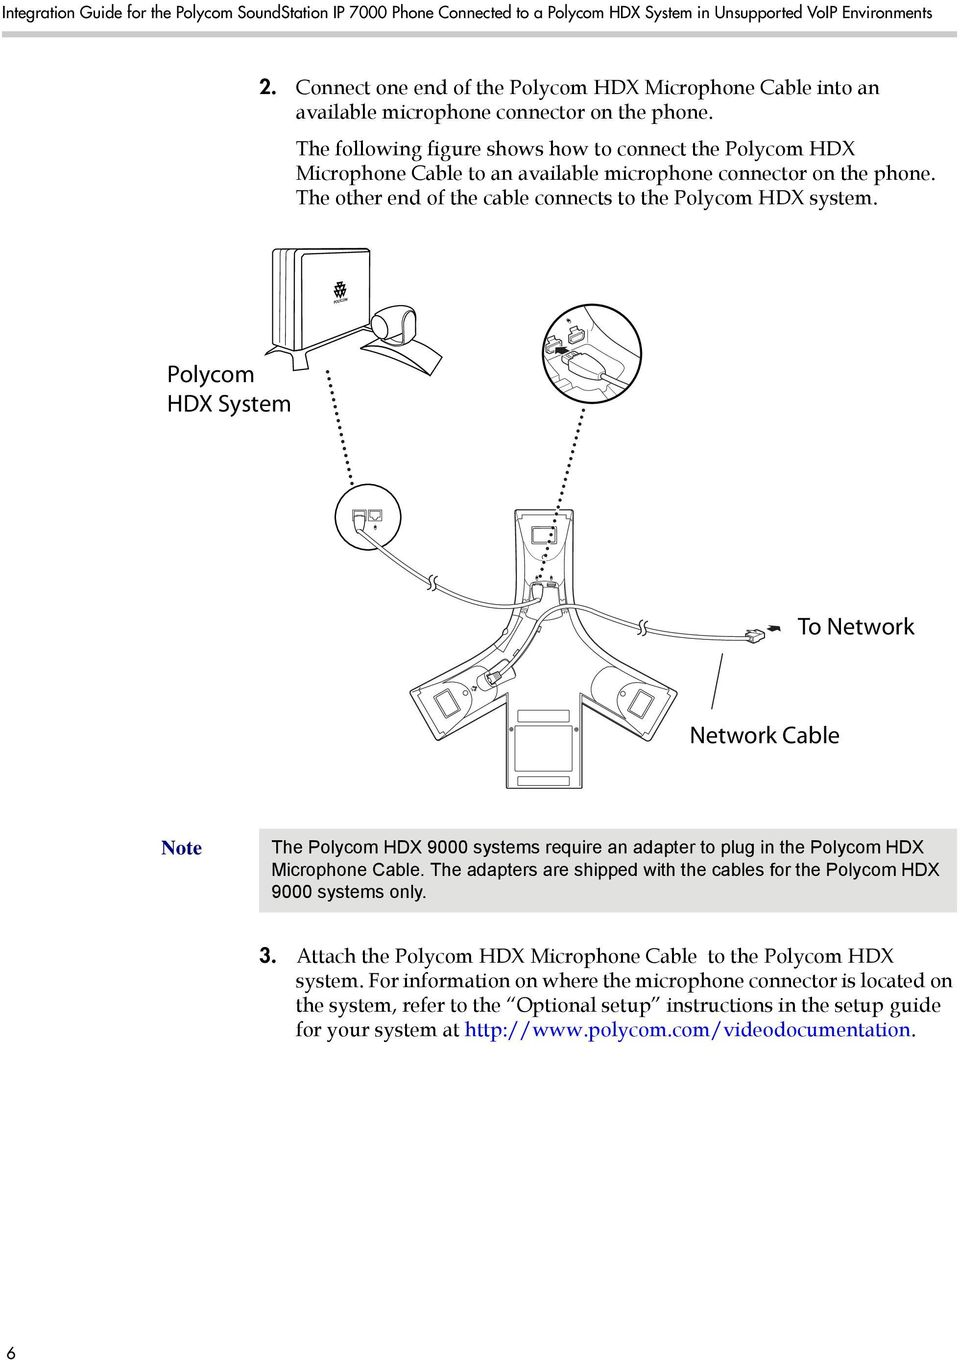 Polycom hdx integrator guide ebook array integration guide for the polycom soundstation ip 7000 conference rh docplayer net fandeluxe Choice Image